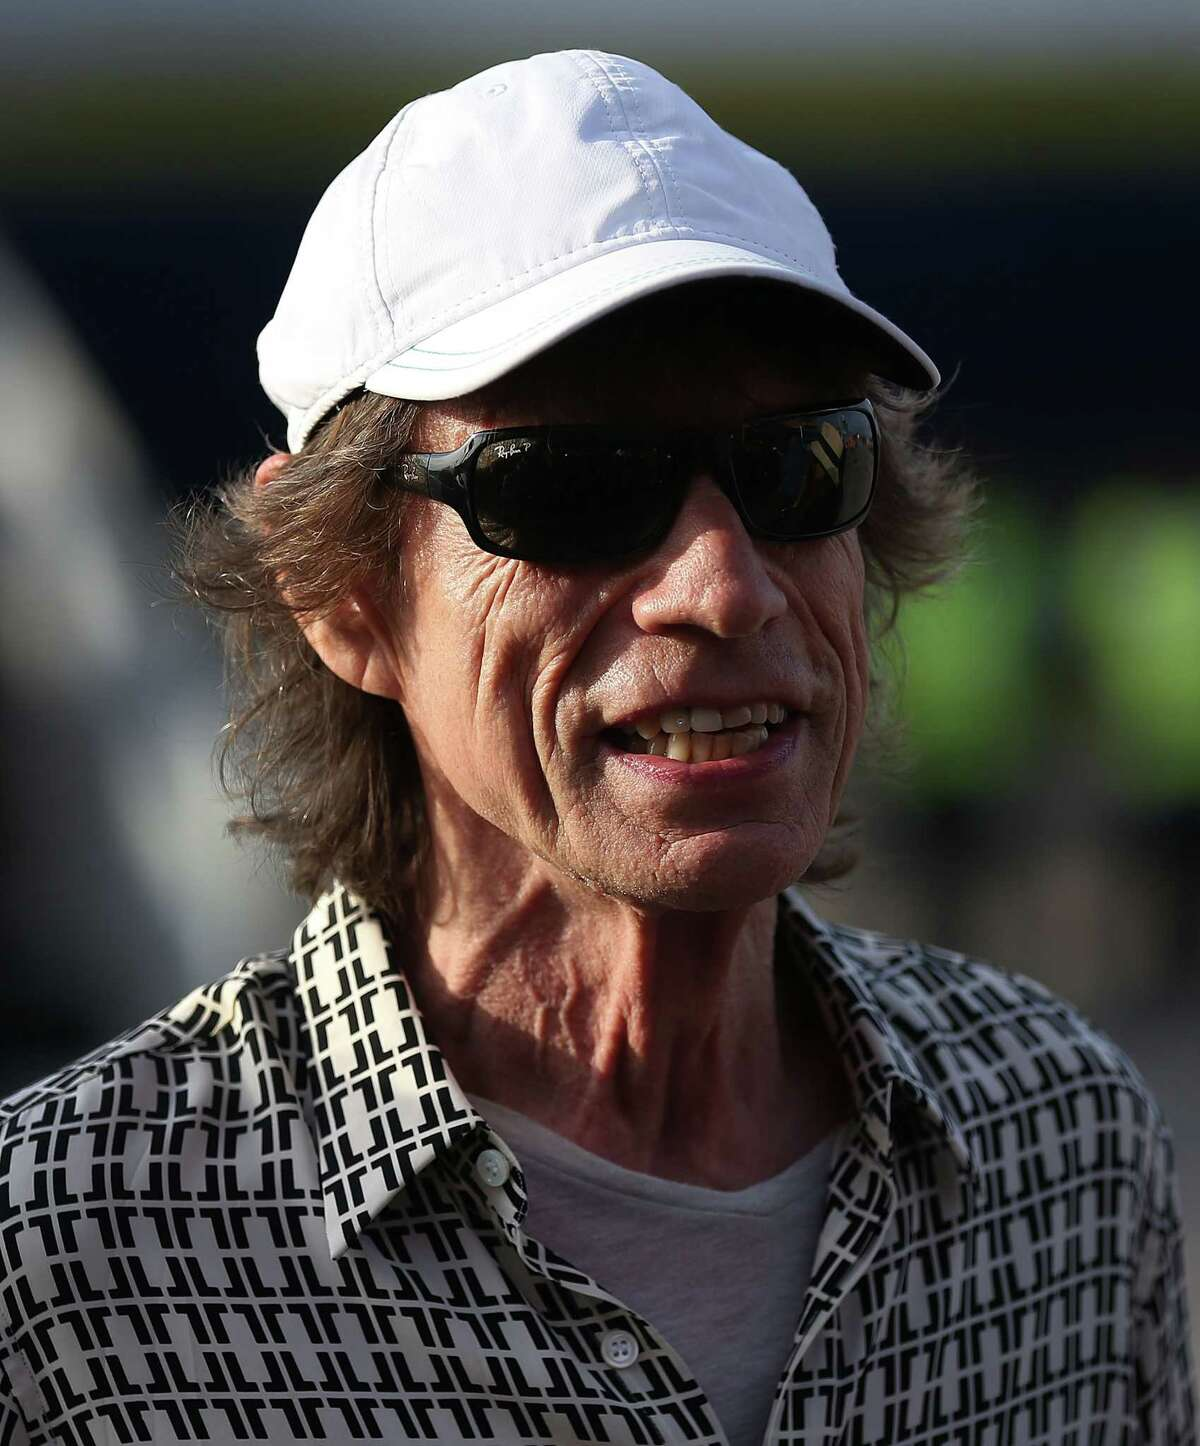 HAVANA, CUBA - MARCH 24: Mick Jagger of the Rolling Stones talks to media after landing at the Jose Marti International Airport on March 24, 2016 in Havana, Cuba. The Rolling Stones are in Havana to play a free concert for the first time, after the music was once banned by the Cuban government. (Photo by Joe Raedle/Getty Images) ORG XMIT: 618018865